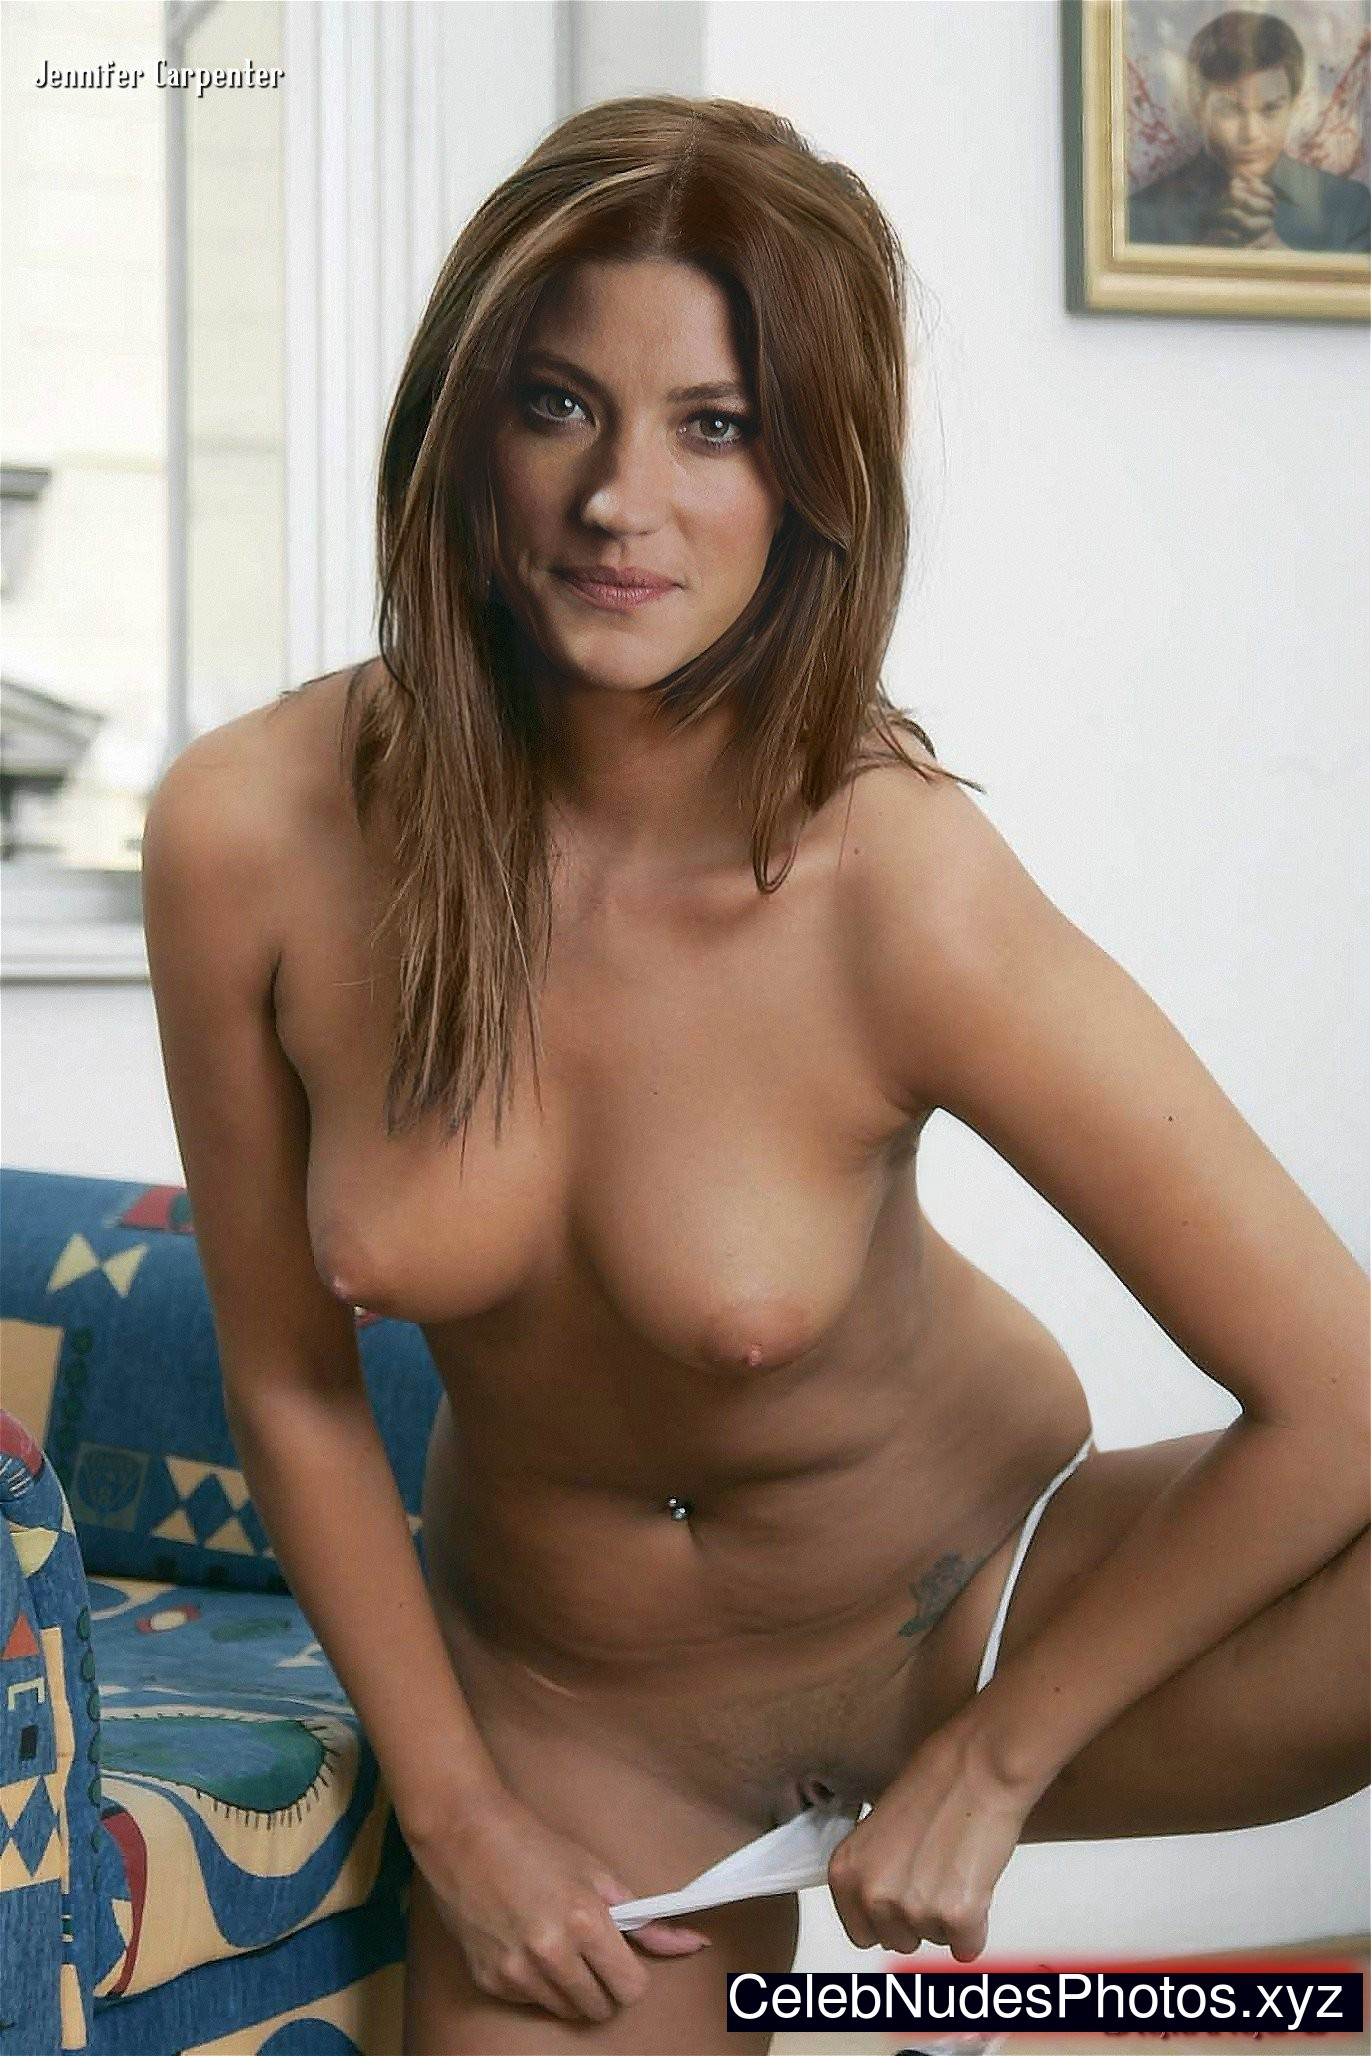 Accept. opinion, Jennifer carpenter real nude consider